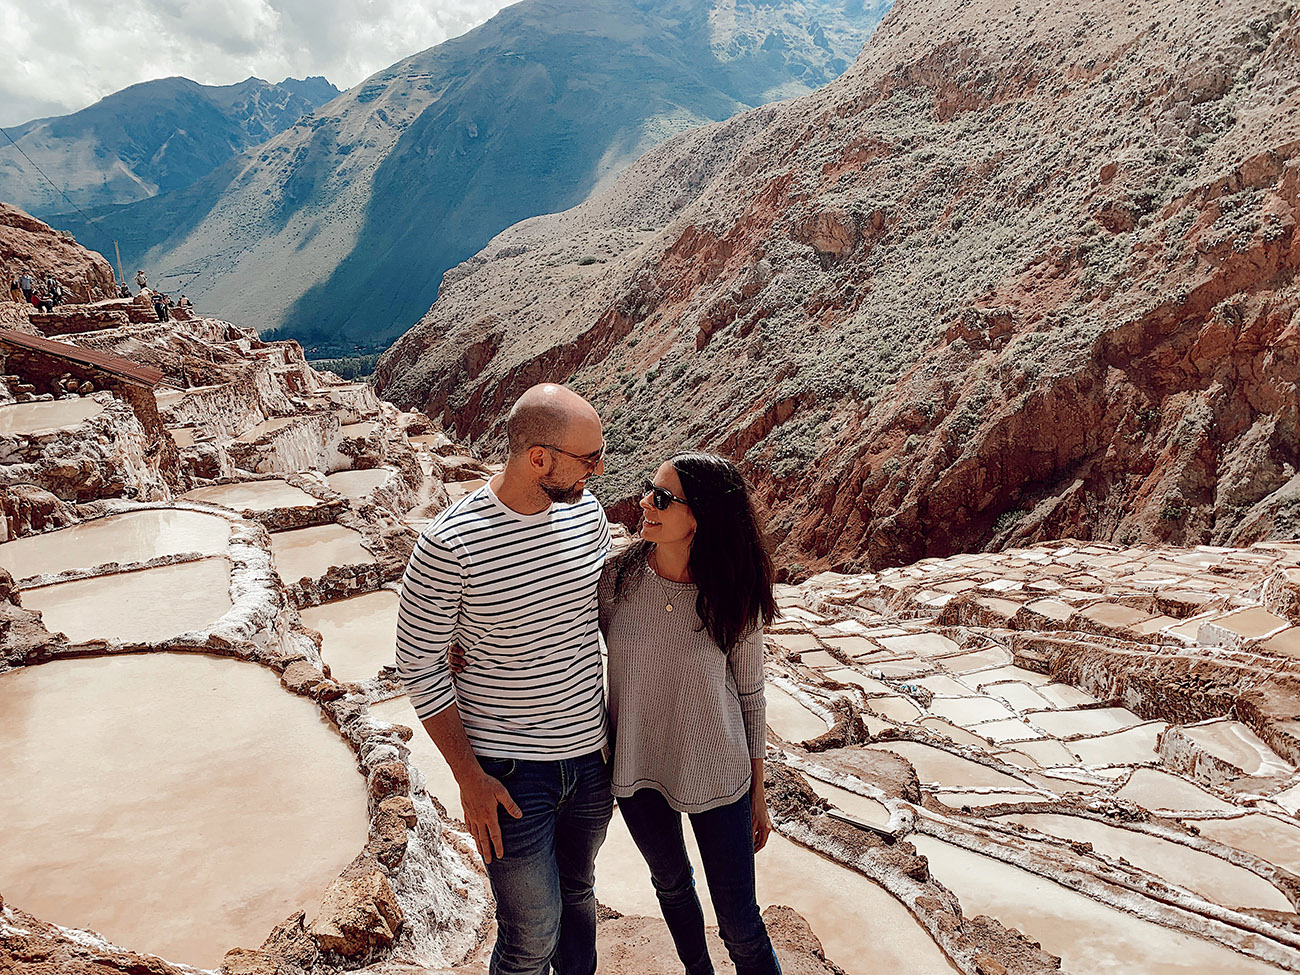 Couple at the Maras Salt Mines in Peru